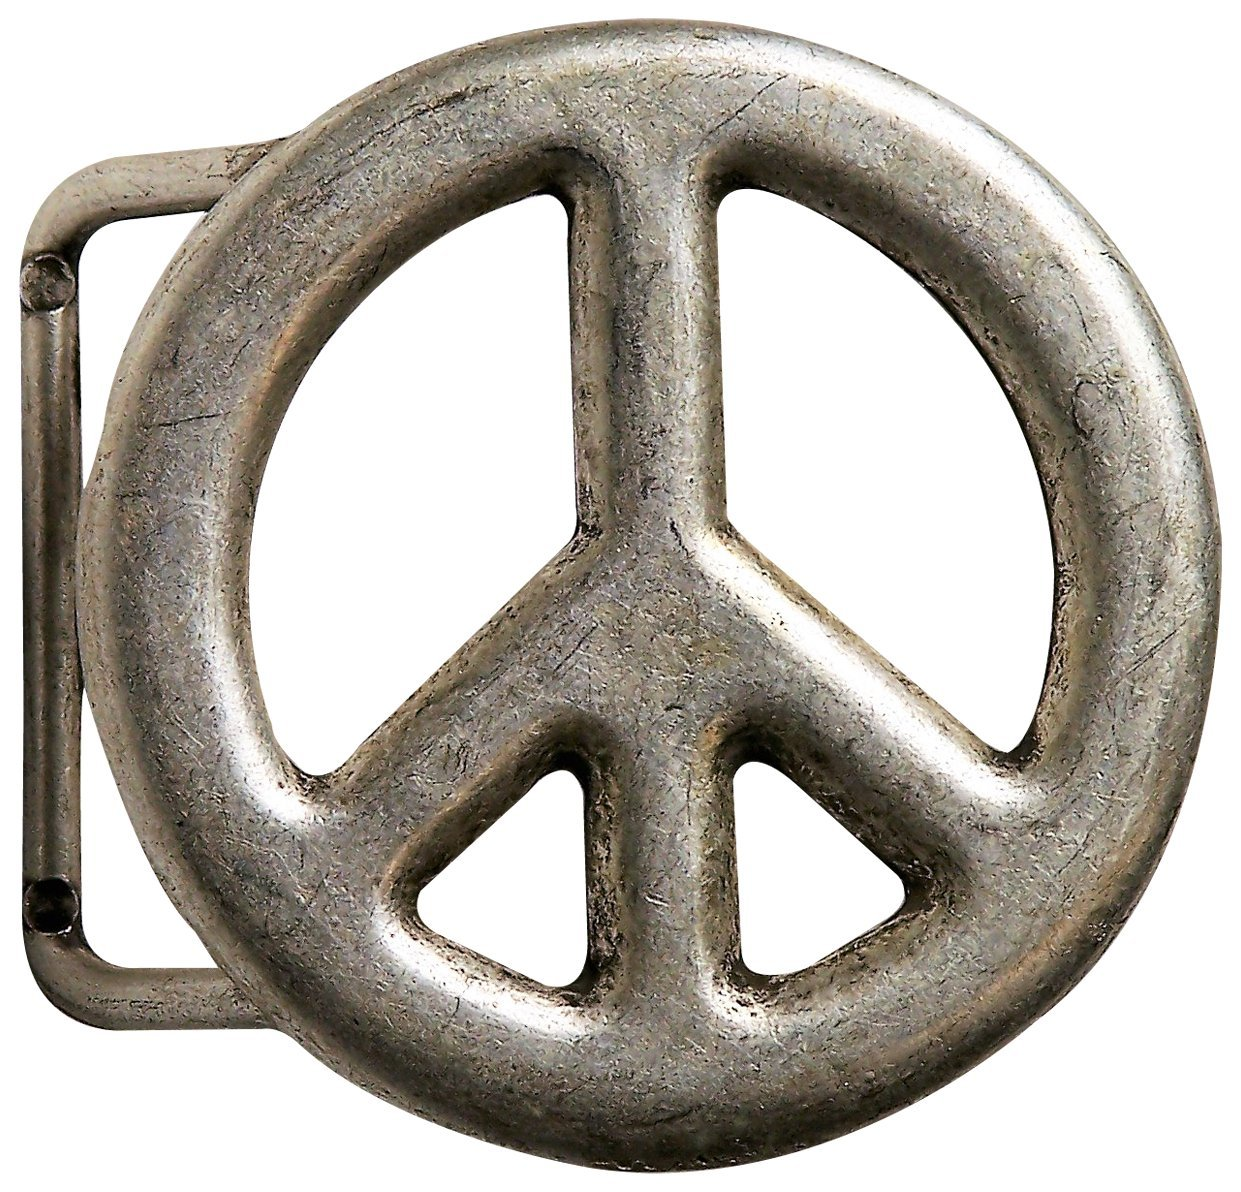 FRONHOFER Peace belt buckle, antique silver, 1.5'/4cm, peace symbol buckle 18183, Color:Silver color, Size:One Size 1.5' /4cm